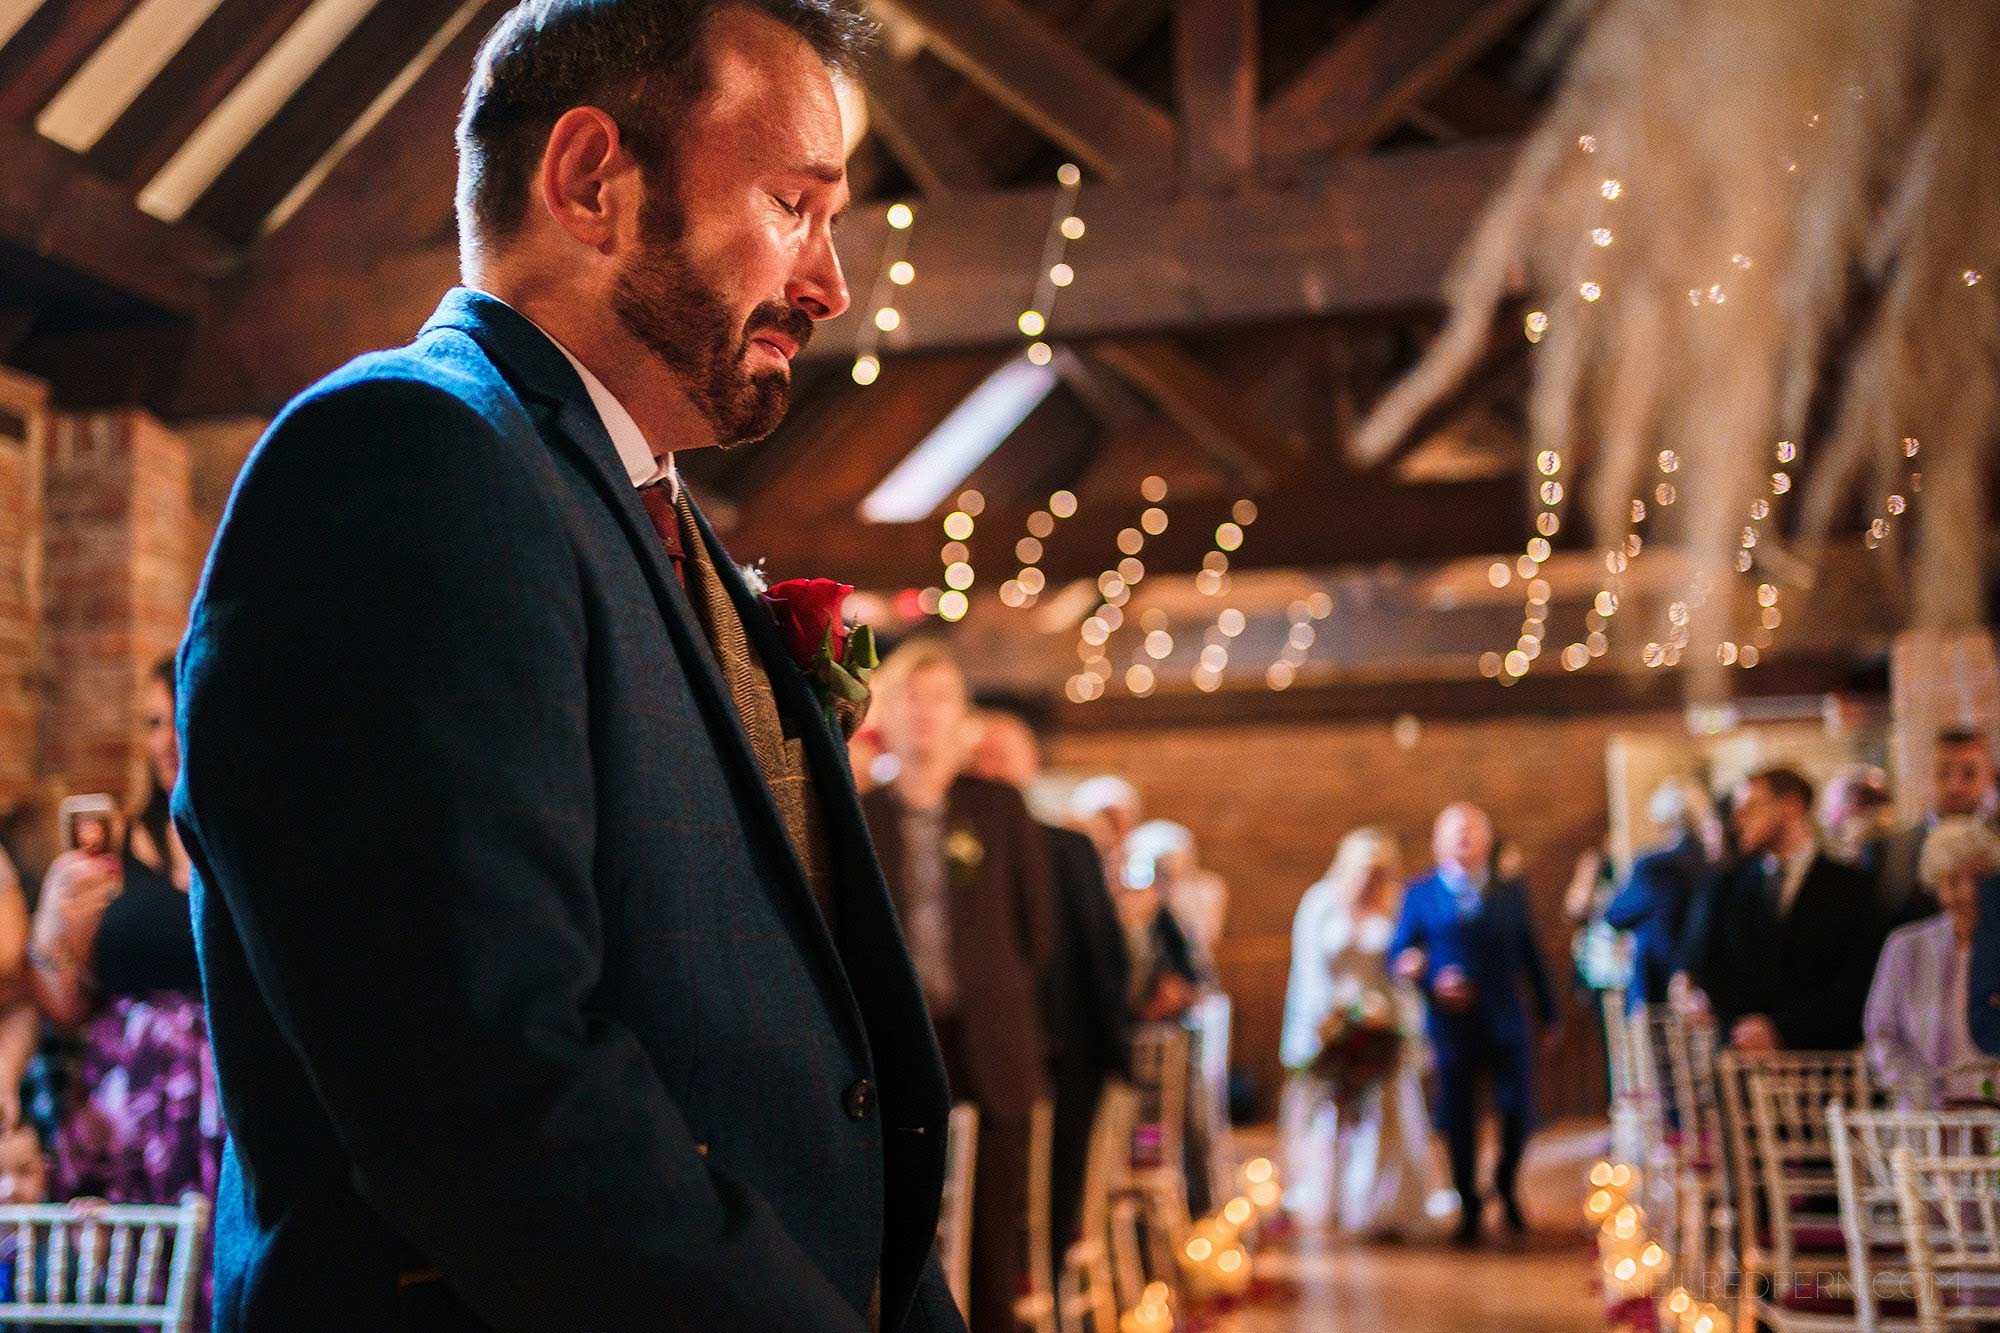 emotional groom waiting for bride to walk down the aisle